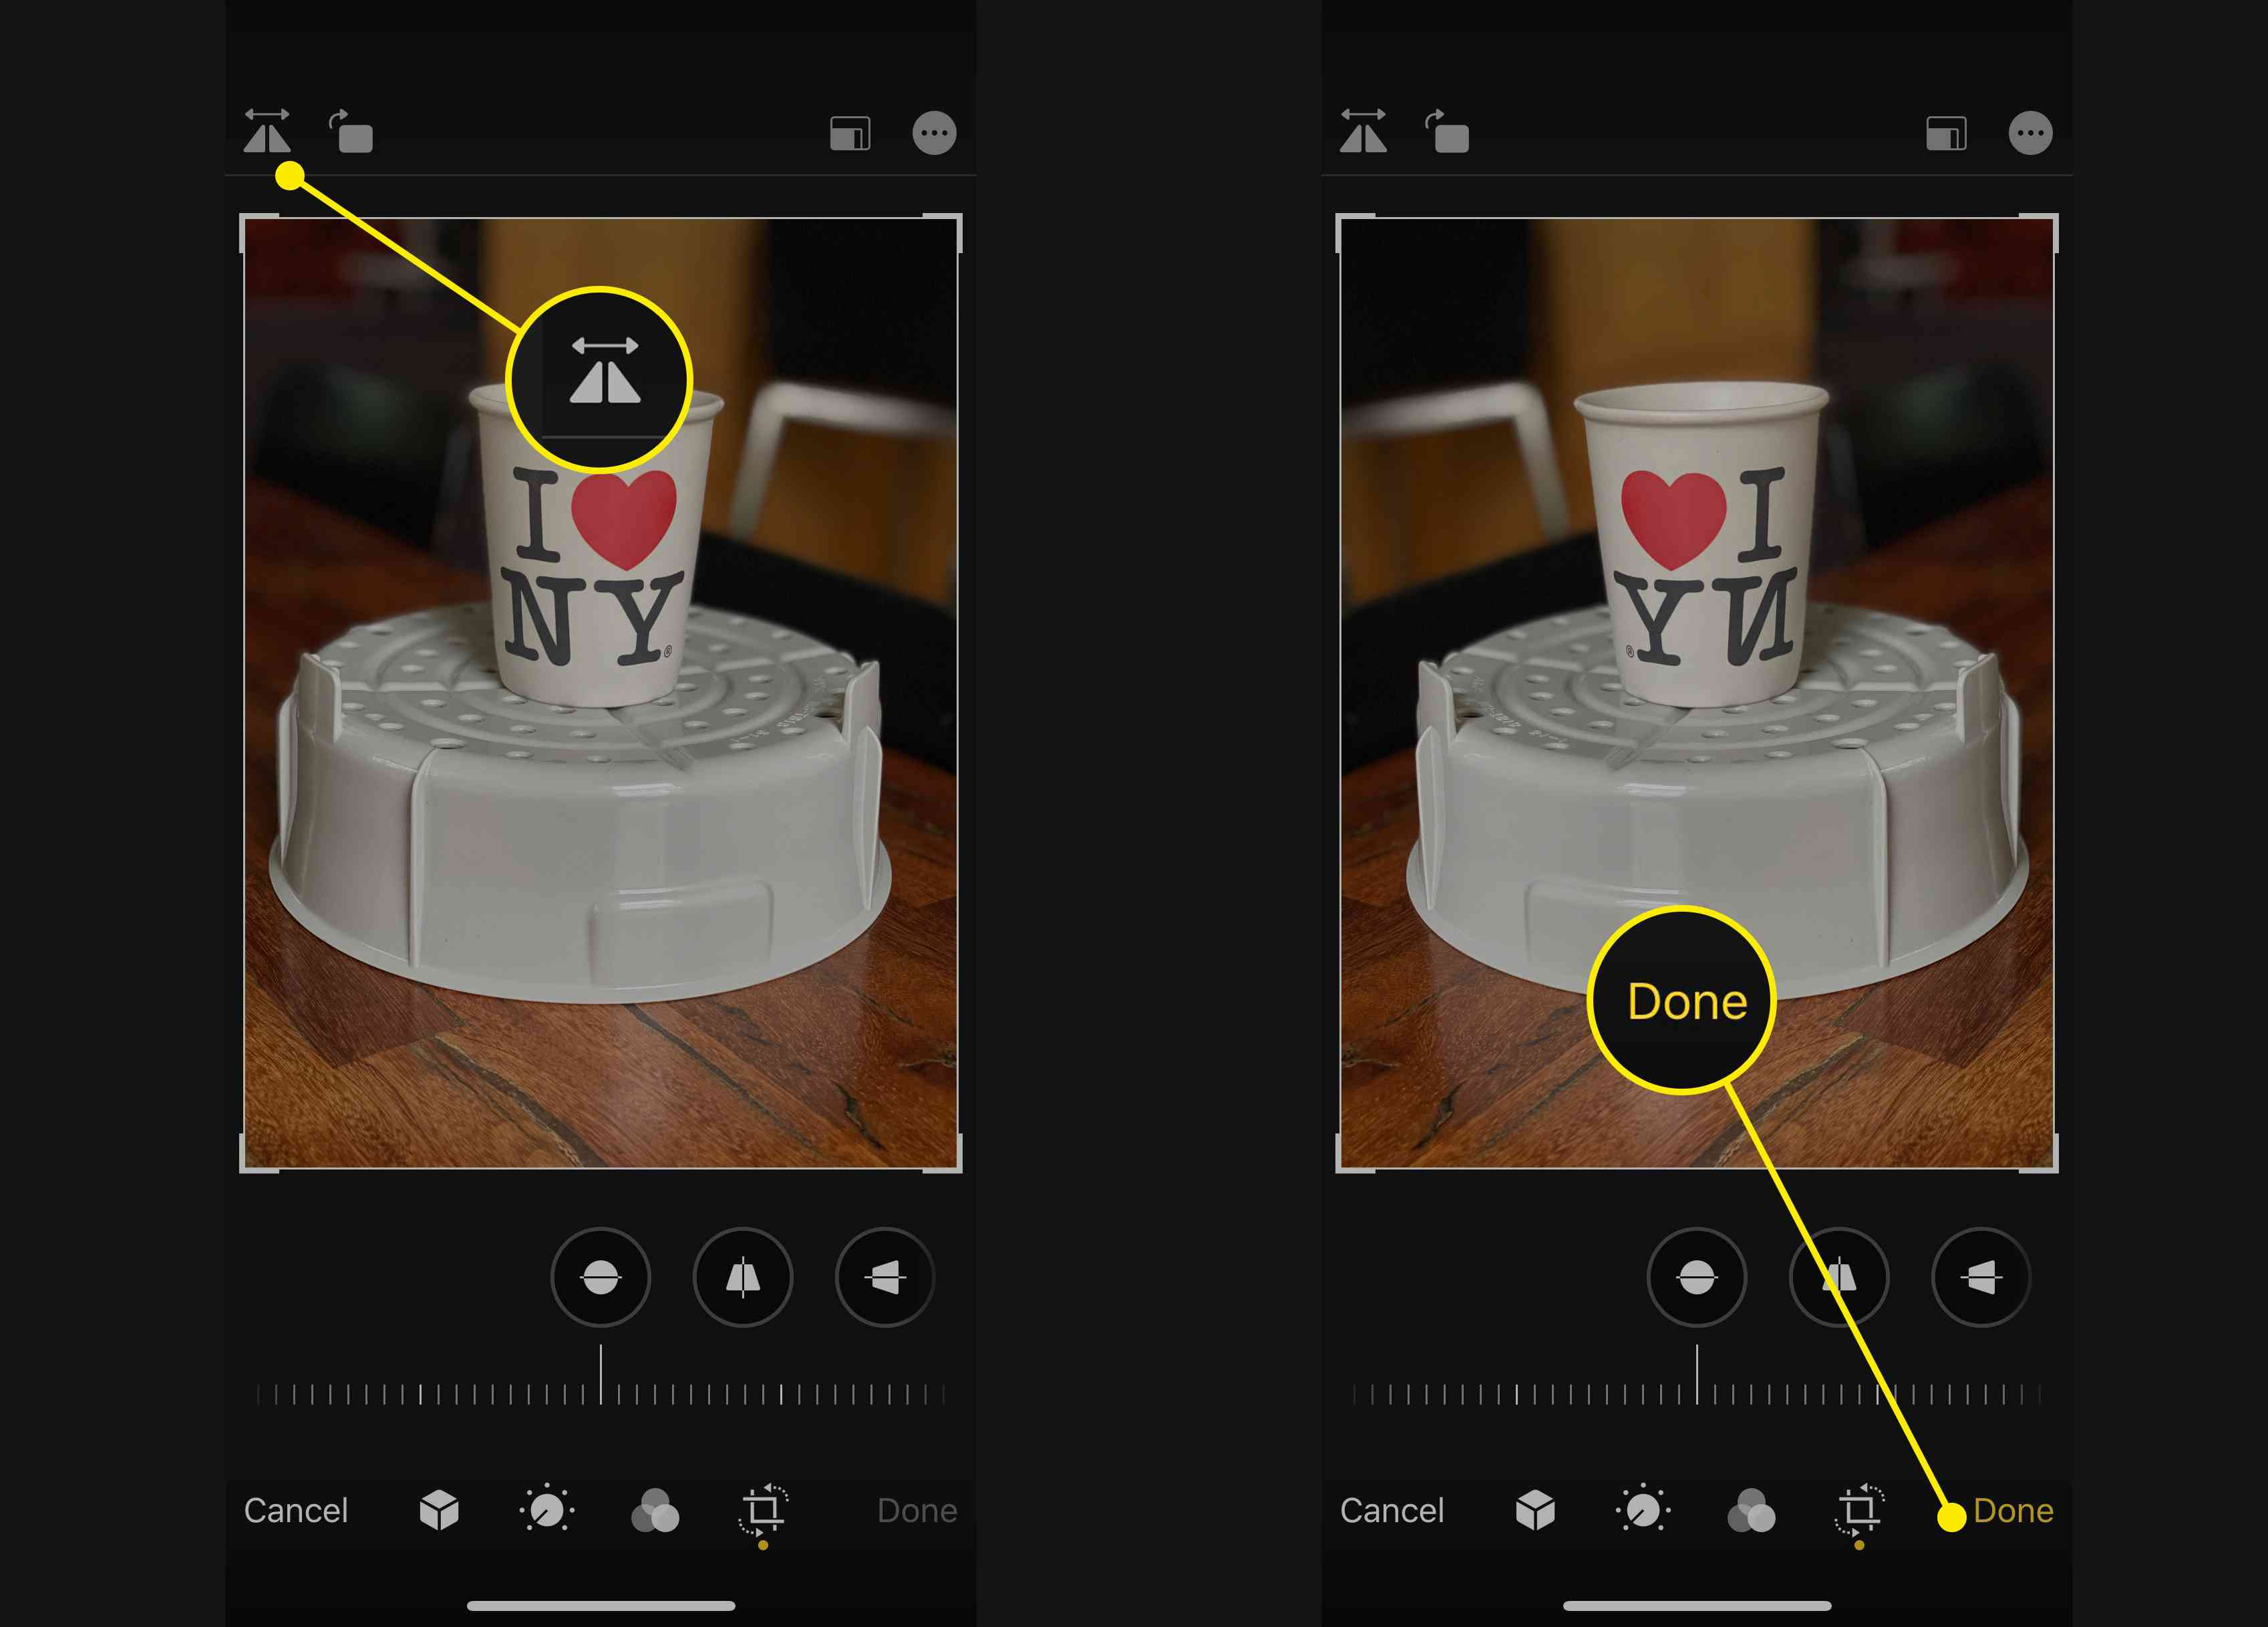 Flip and Done buttons in iOS Photos app